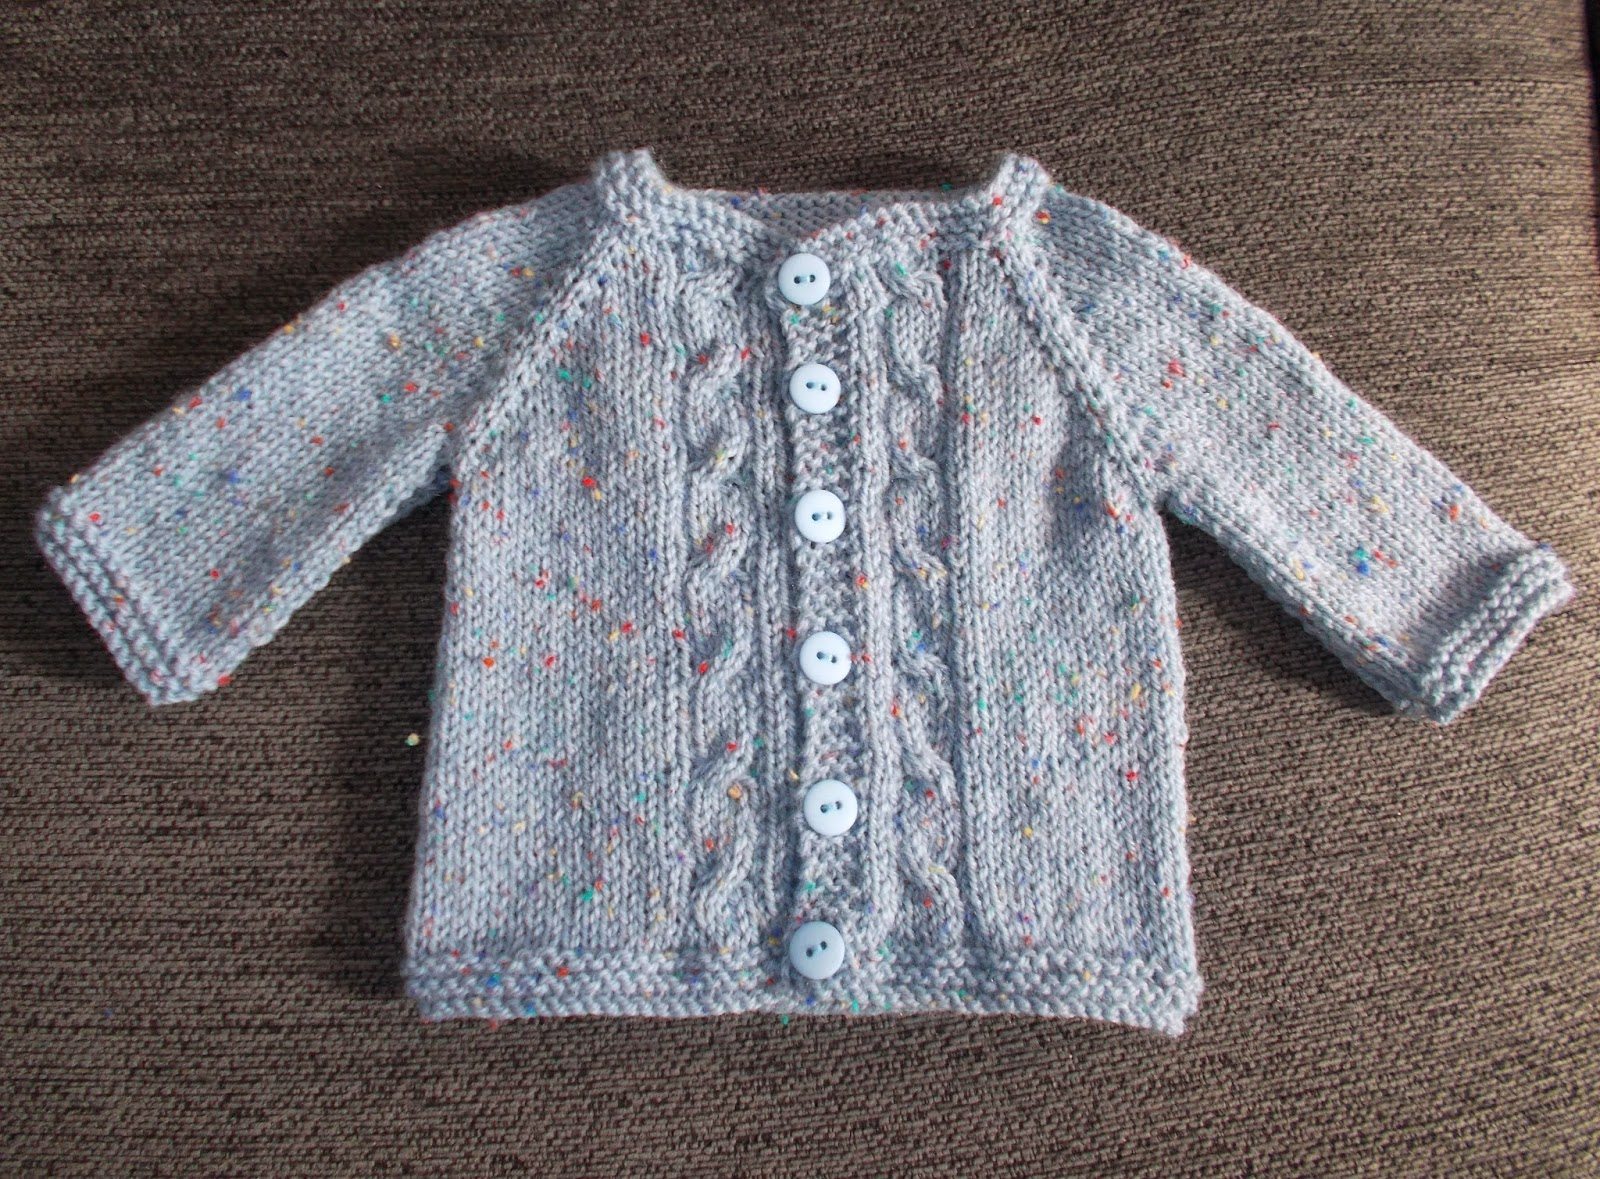 97245501b All about Mariannas Lazy Daisy Days Max Baby Cardigan - kidskunst.info